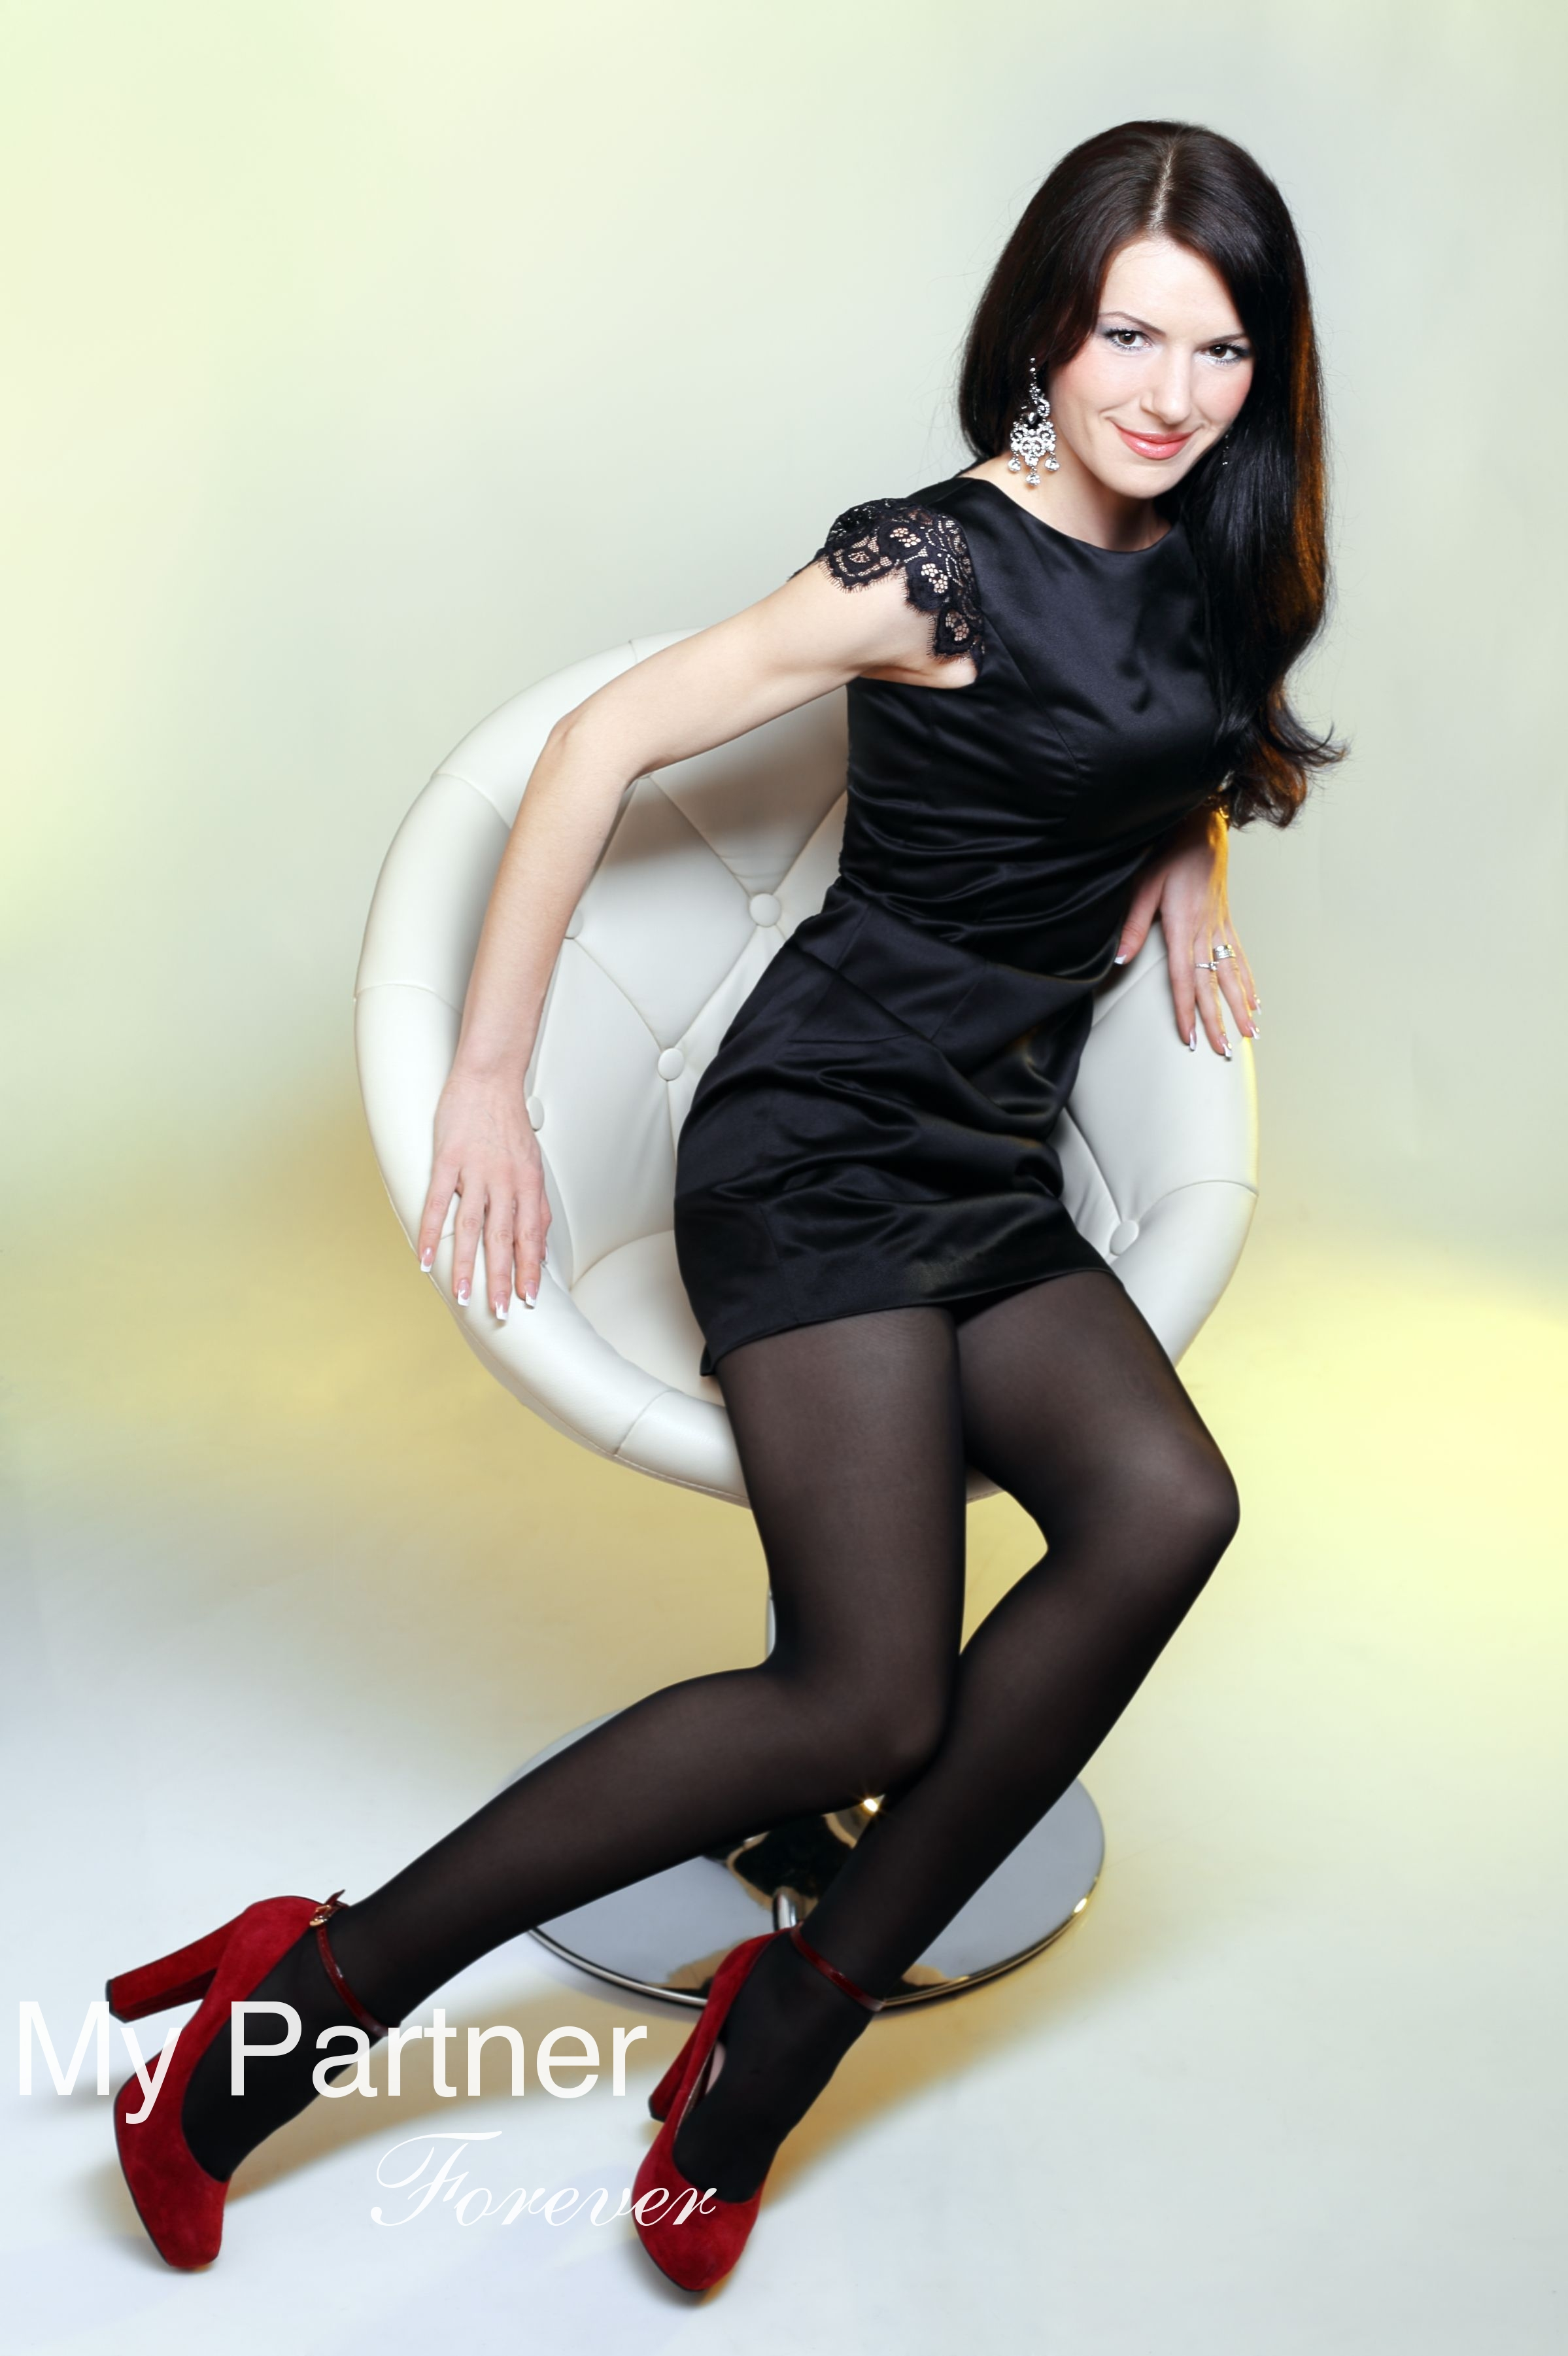 Meet Single Belarusian Woman Olga from Grodno, Belarus